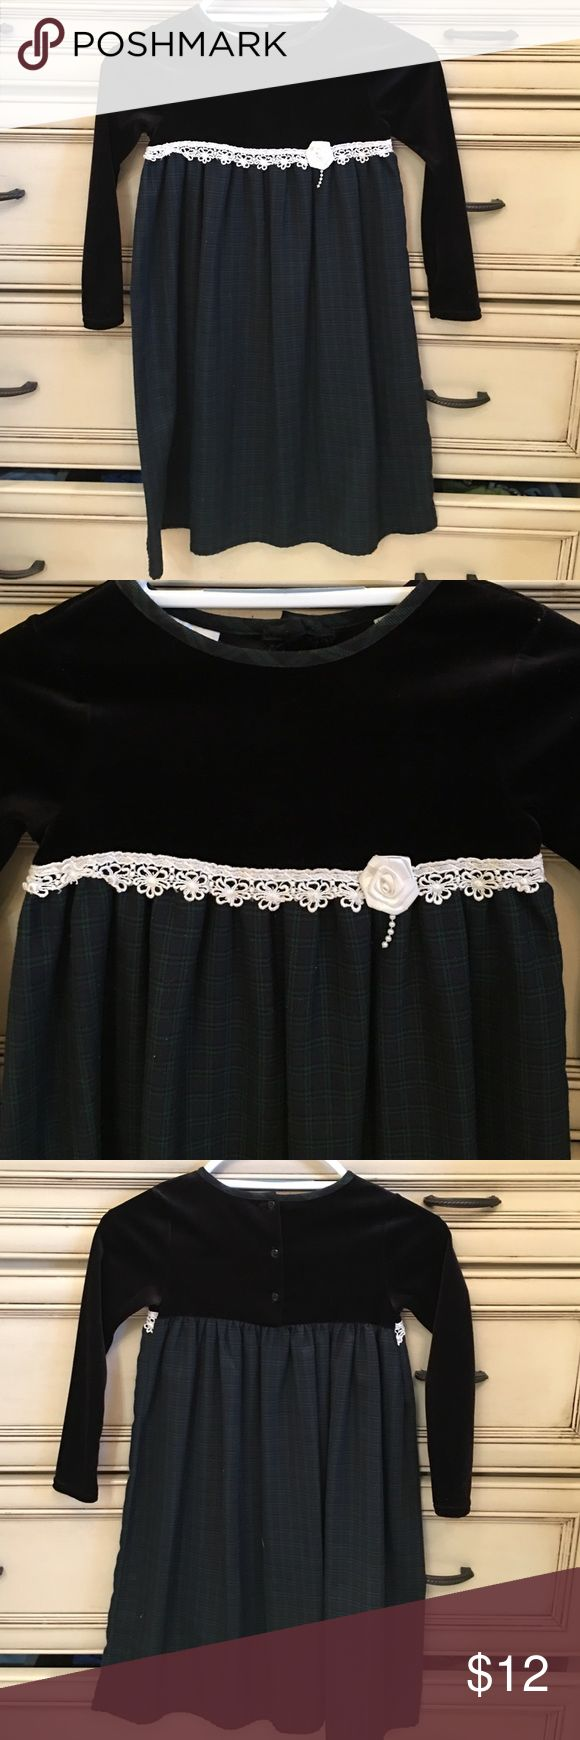 Girls Youngland Black Velvet and Plaid Dress Sz 6X Beautiful EUC Youngland dress in a size 6X.  The top is black velvet and remainder of dress is green and navy plaid with white lace between the 2 fabrics. 3 buttons on the back to make it easier to put on and take off.  No stains or tears. Youngland Dresses